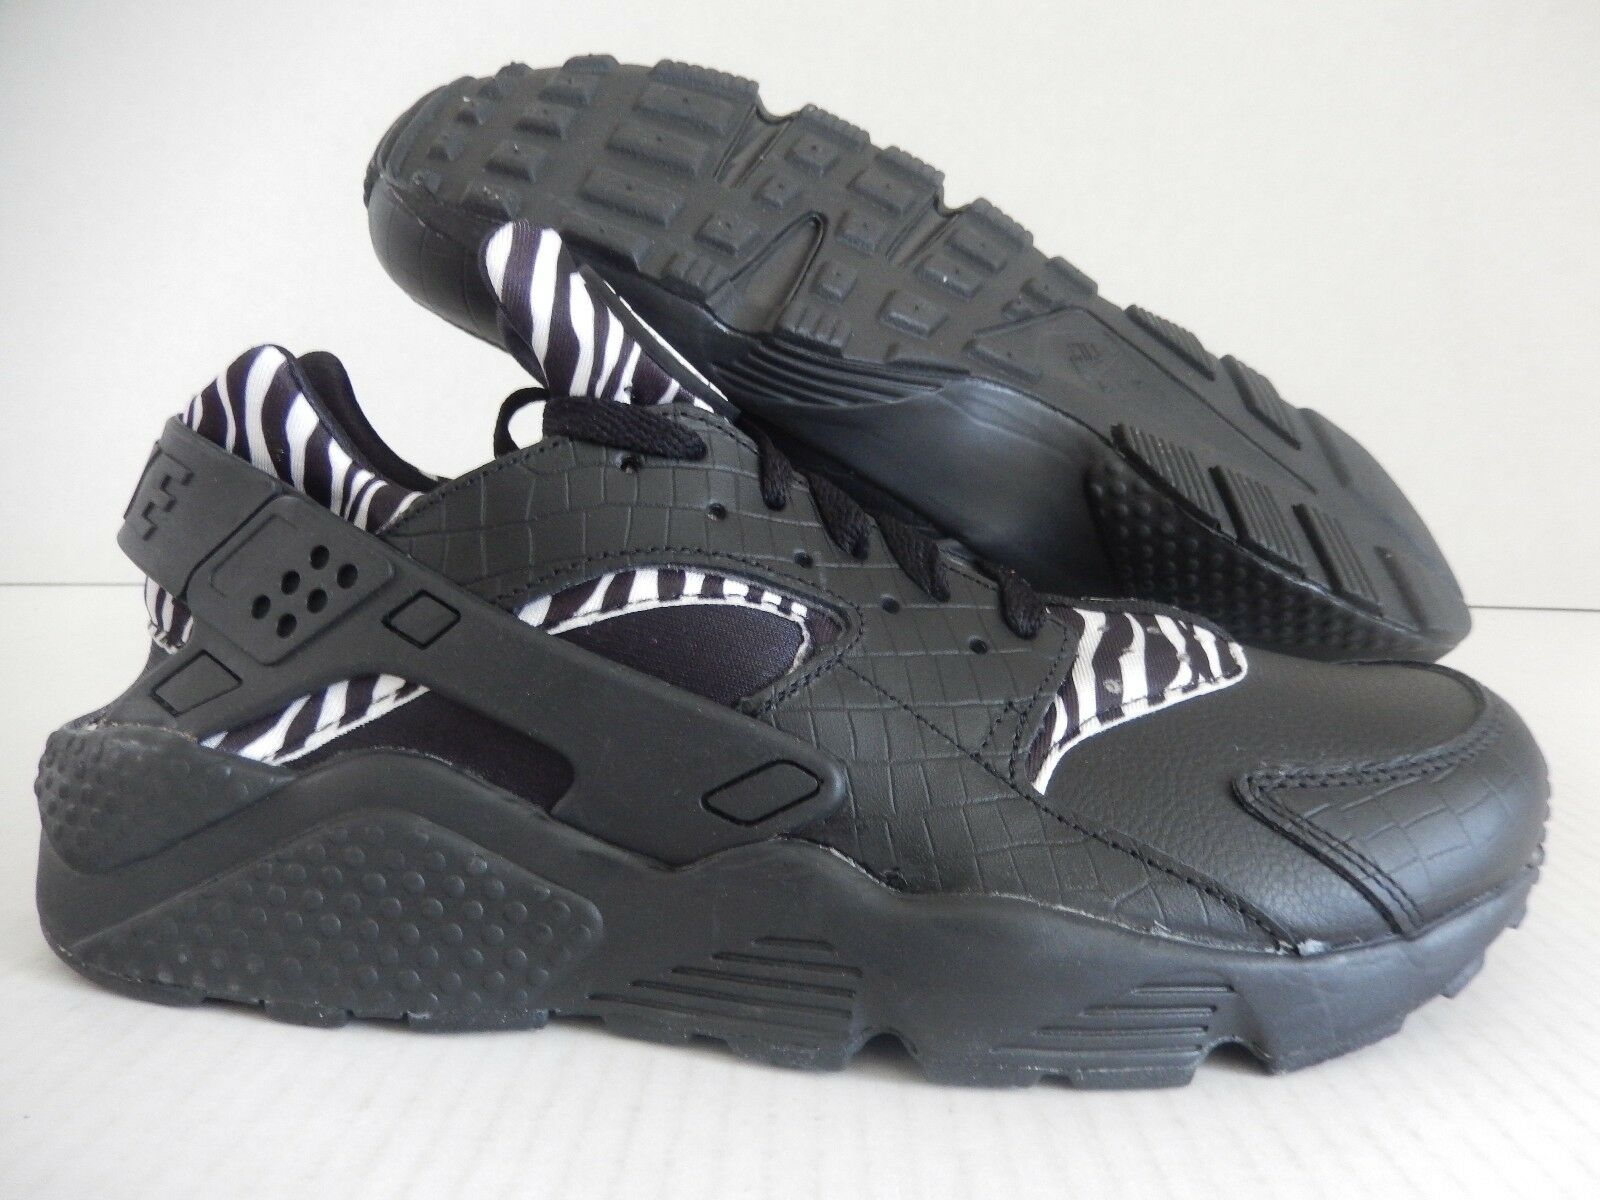 MENS NIKE AIR HUARACHE ID BLACK-WHITE SZ SZ SZ 10 [777330-902] 7d1835